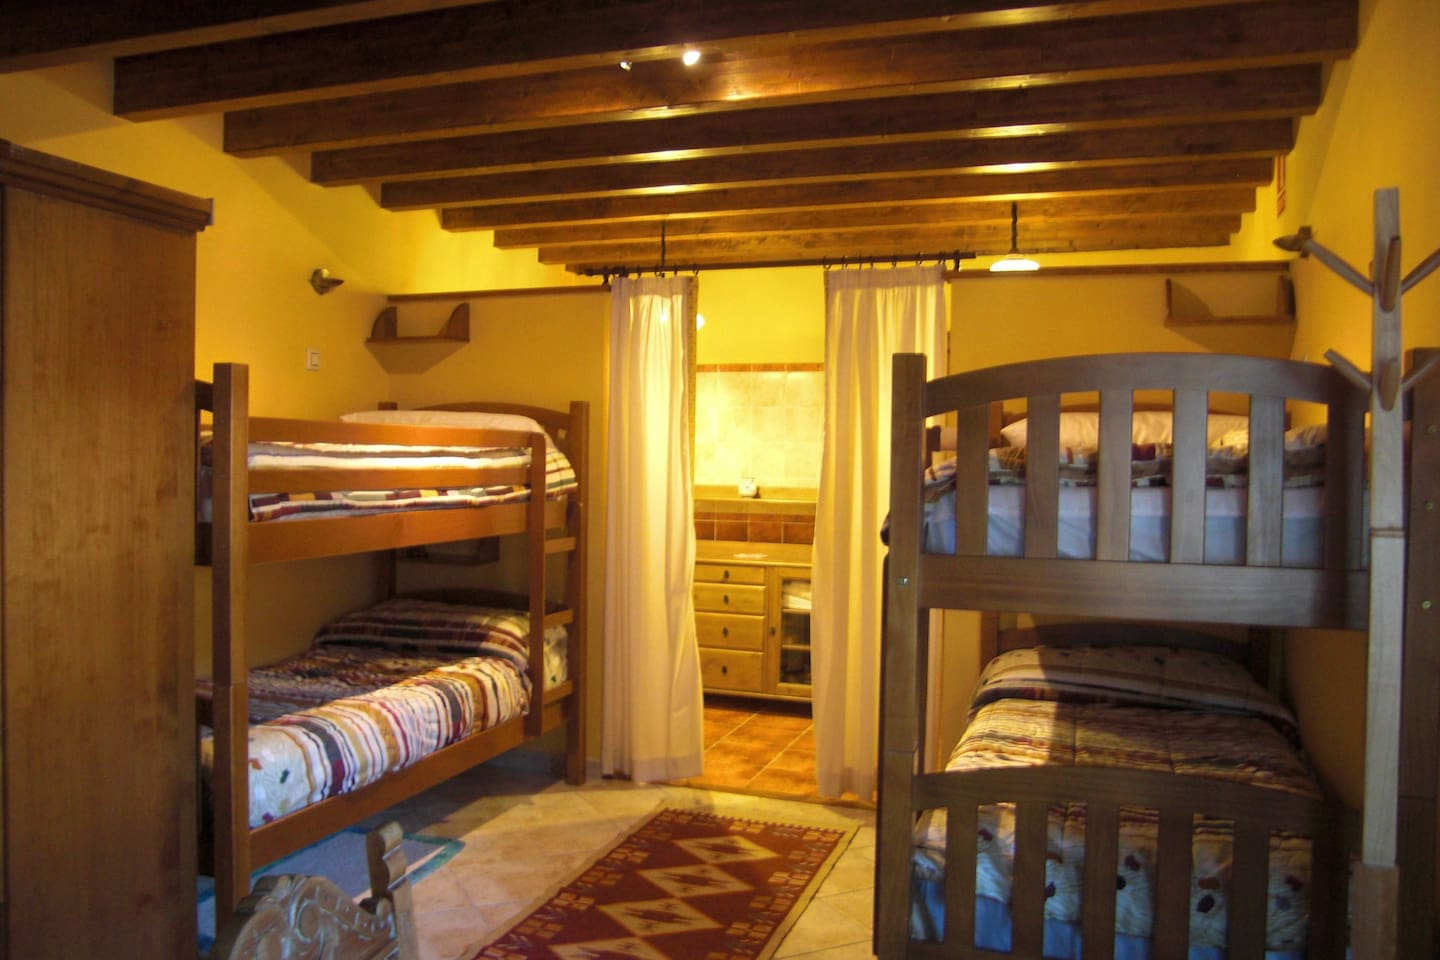 dormitorio familiar con 2 literas y cama doble